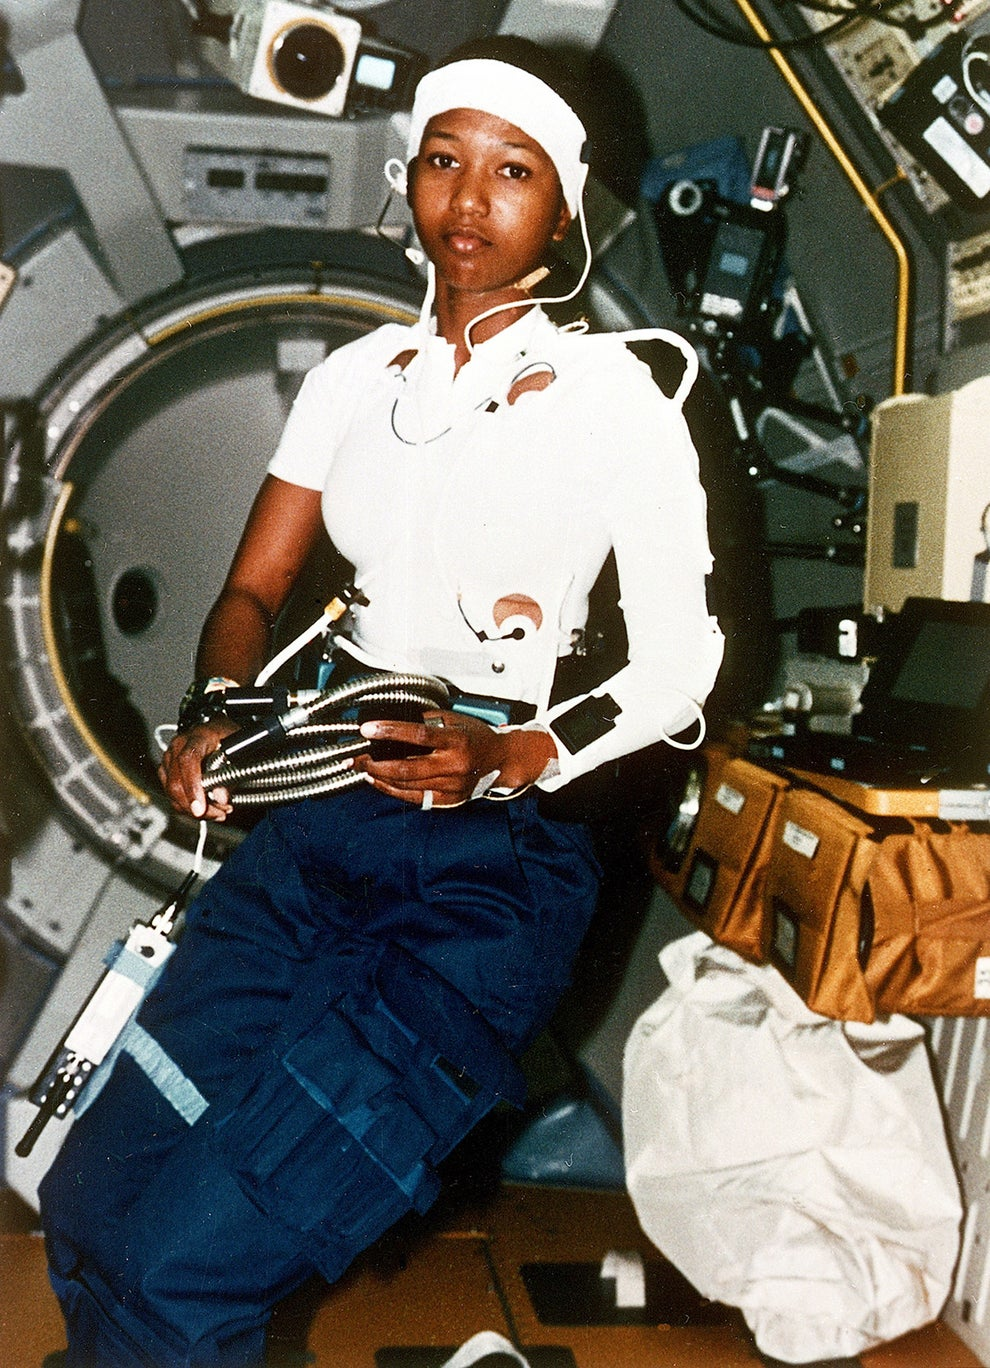 Dr. Mae C. Jemison, engineer, physician, and first black woman to orbit Earth.